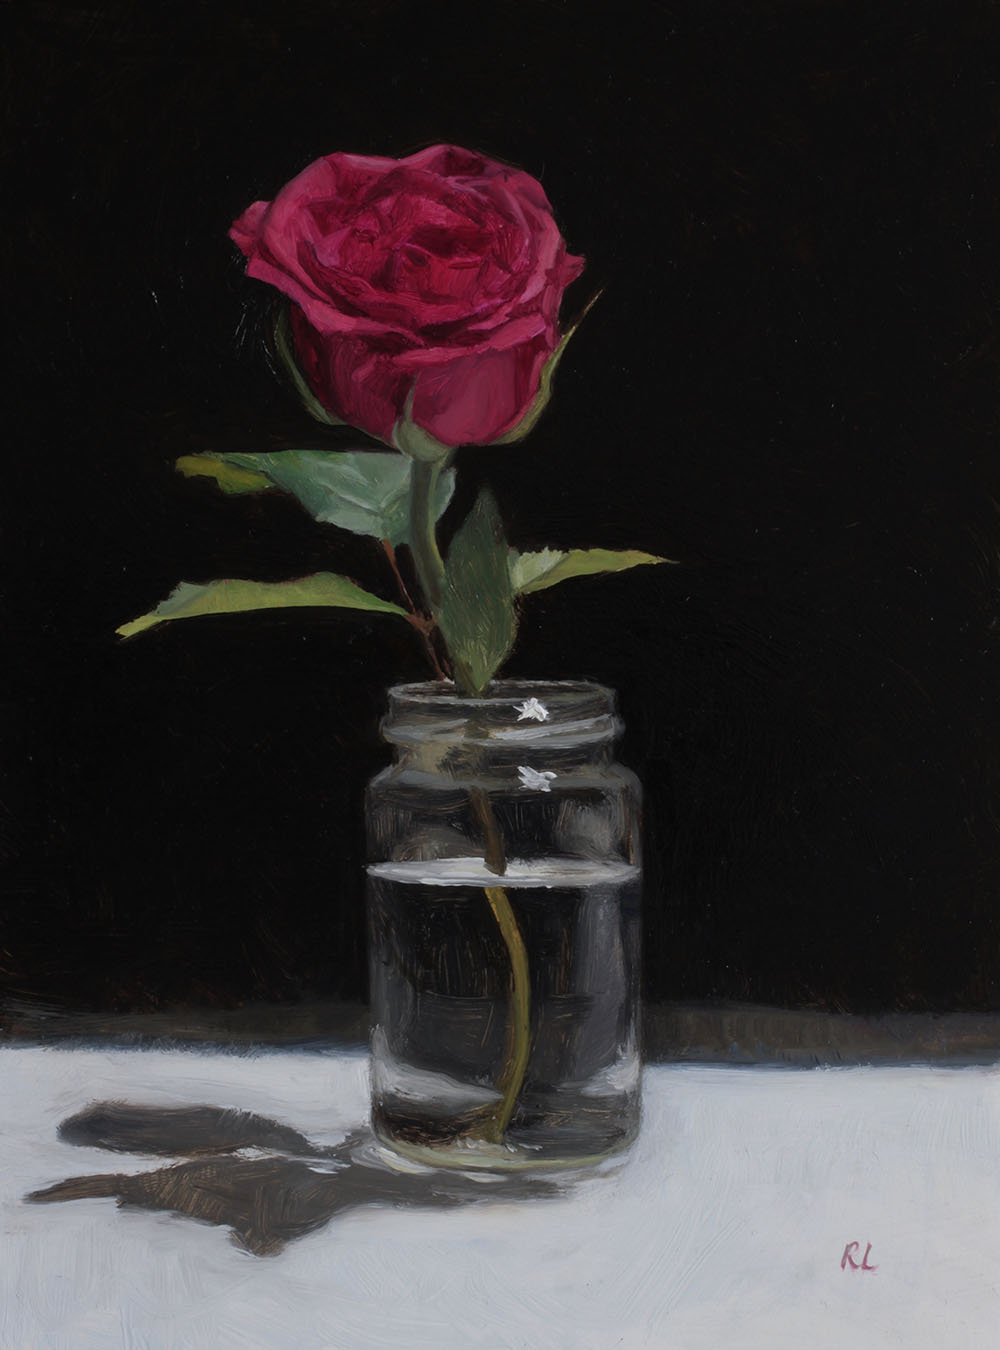 Red Rose in a Glass Jar